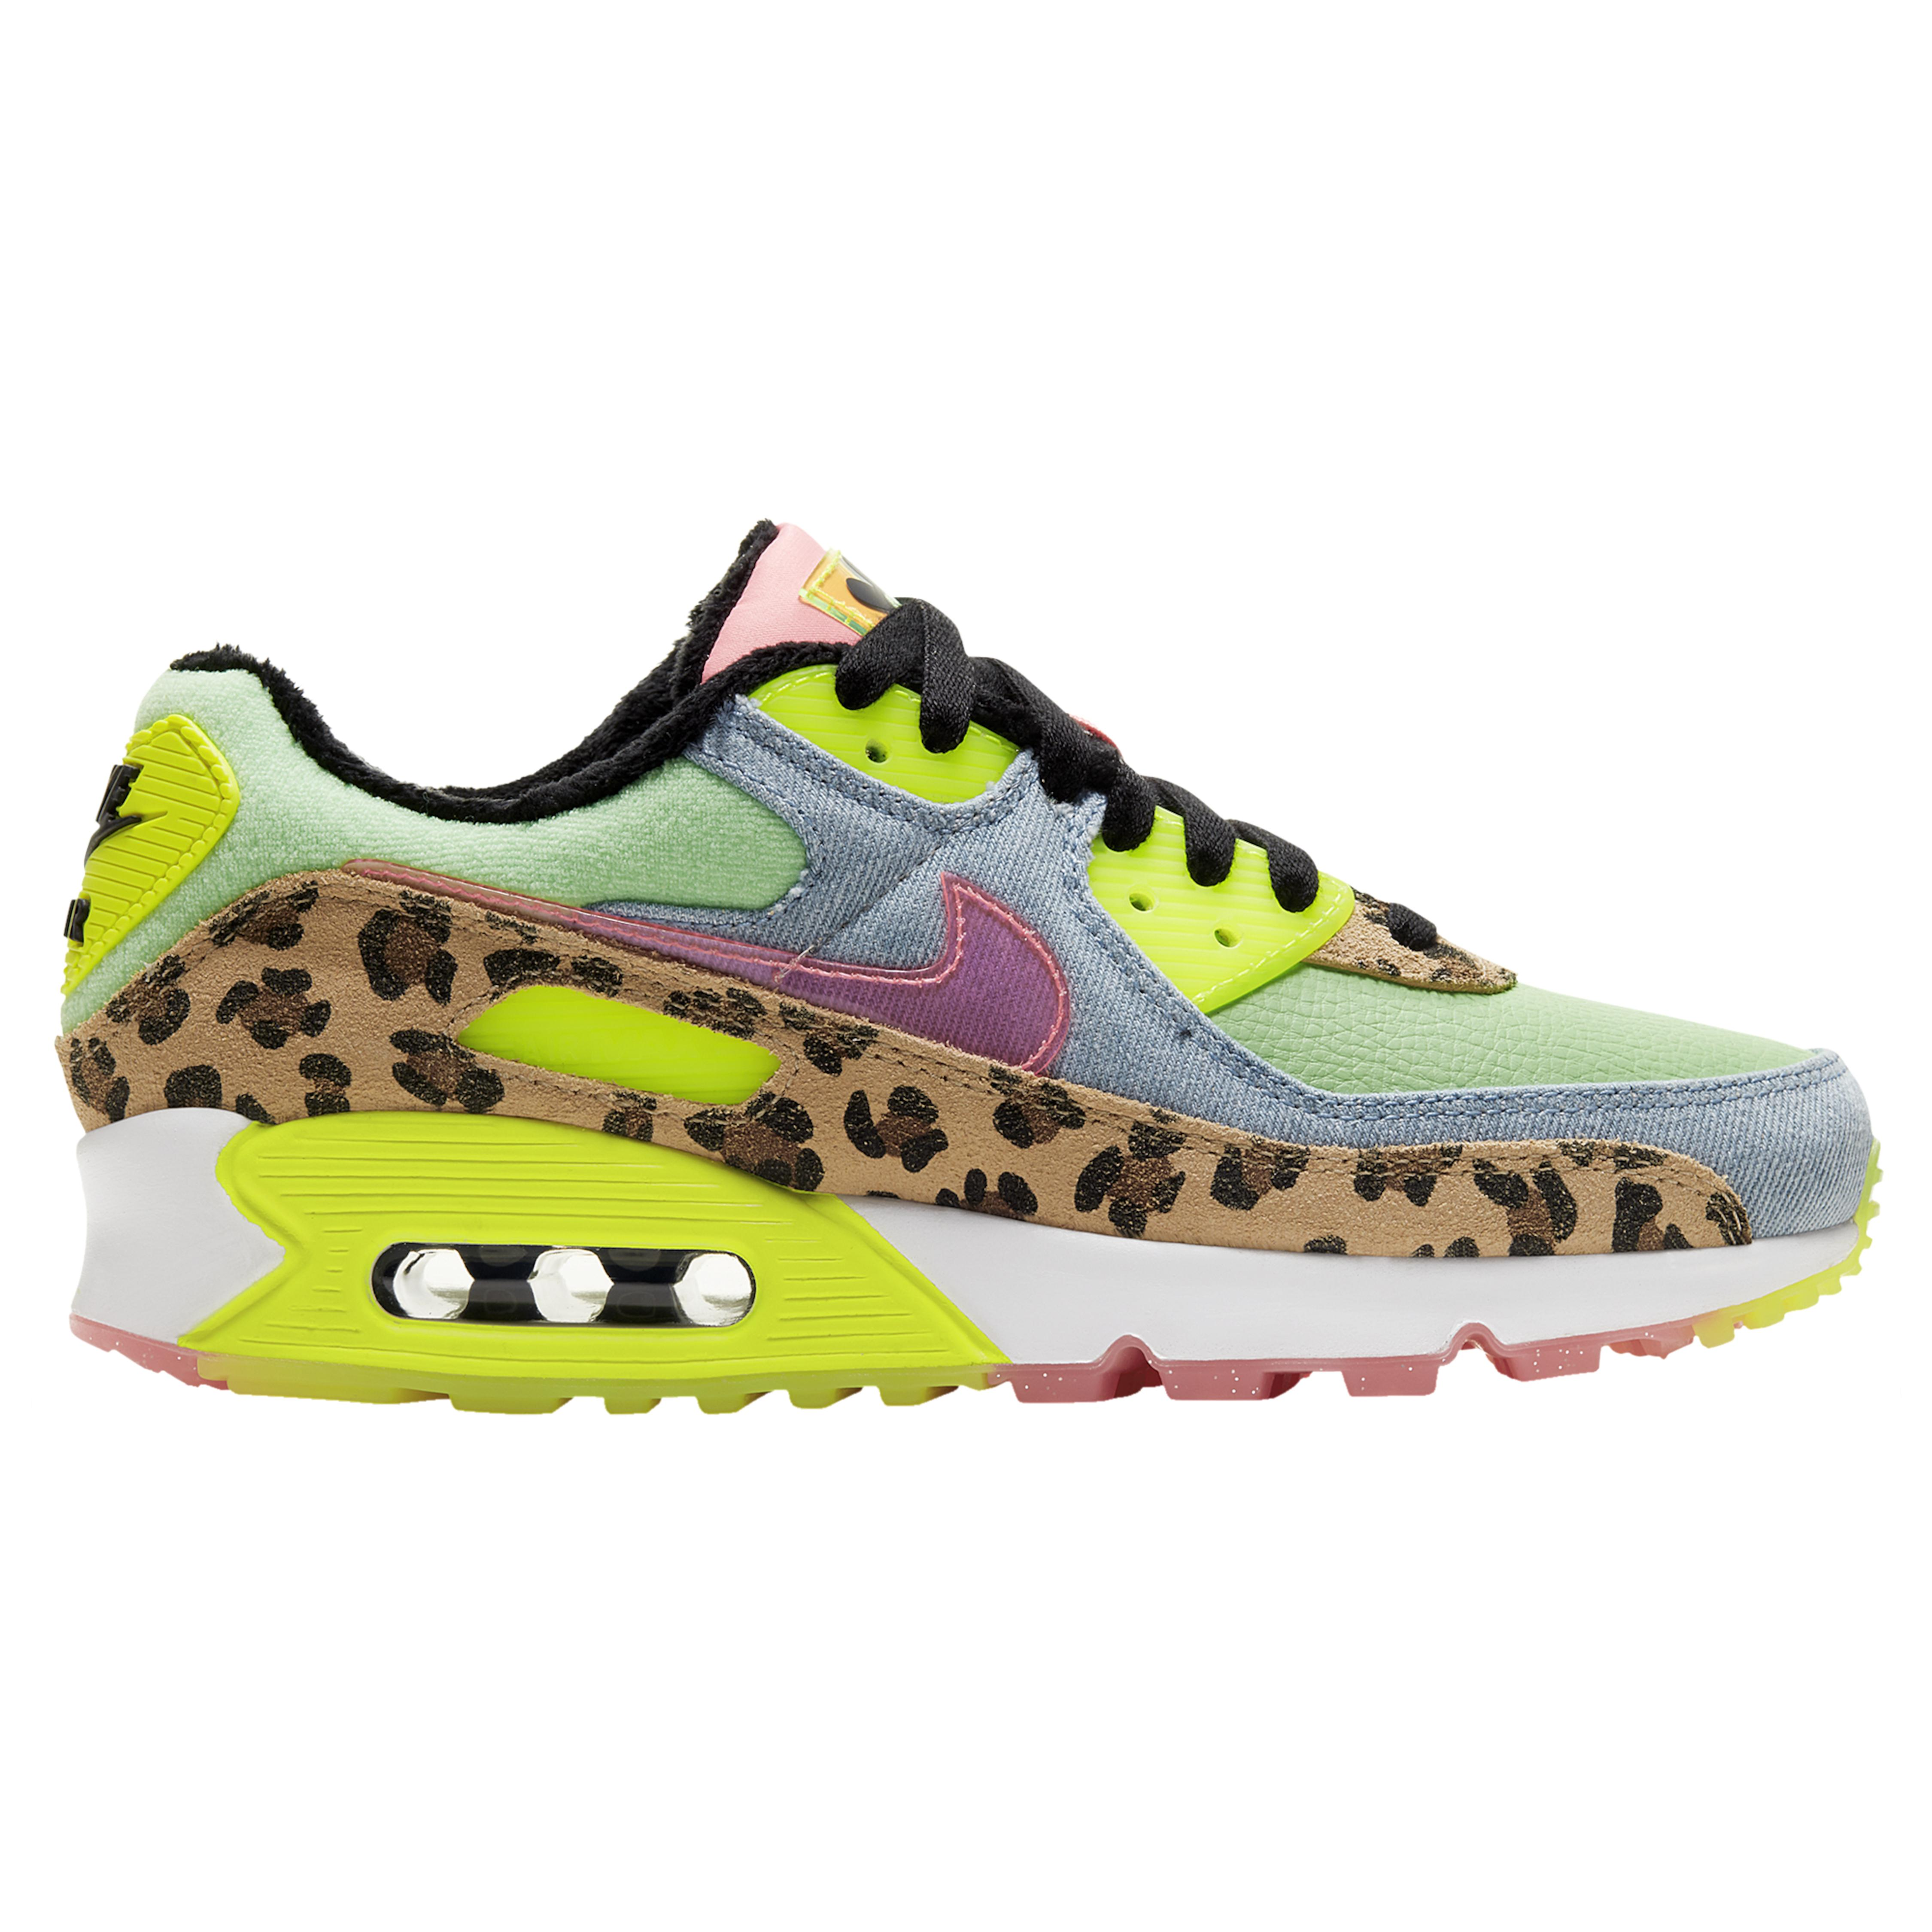 Nike Denim Air Max 90 Lx - Shoes in Green - Save 28% - Lyst